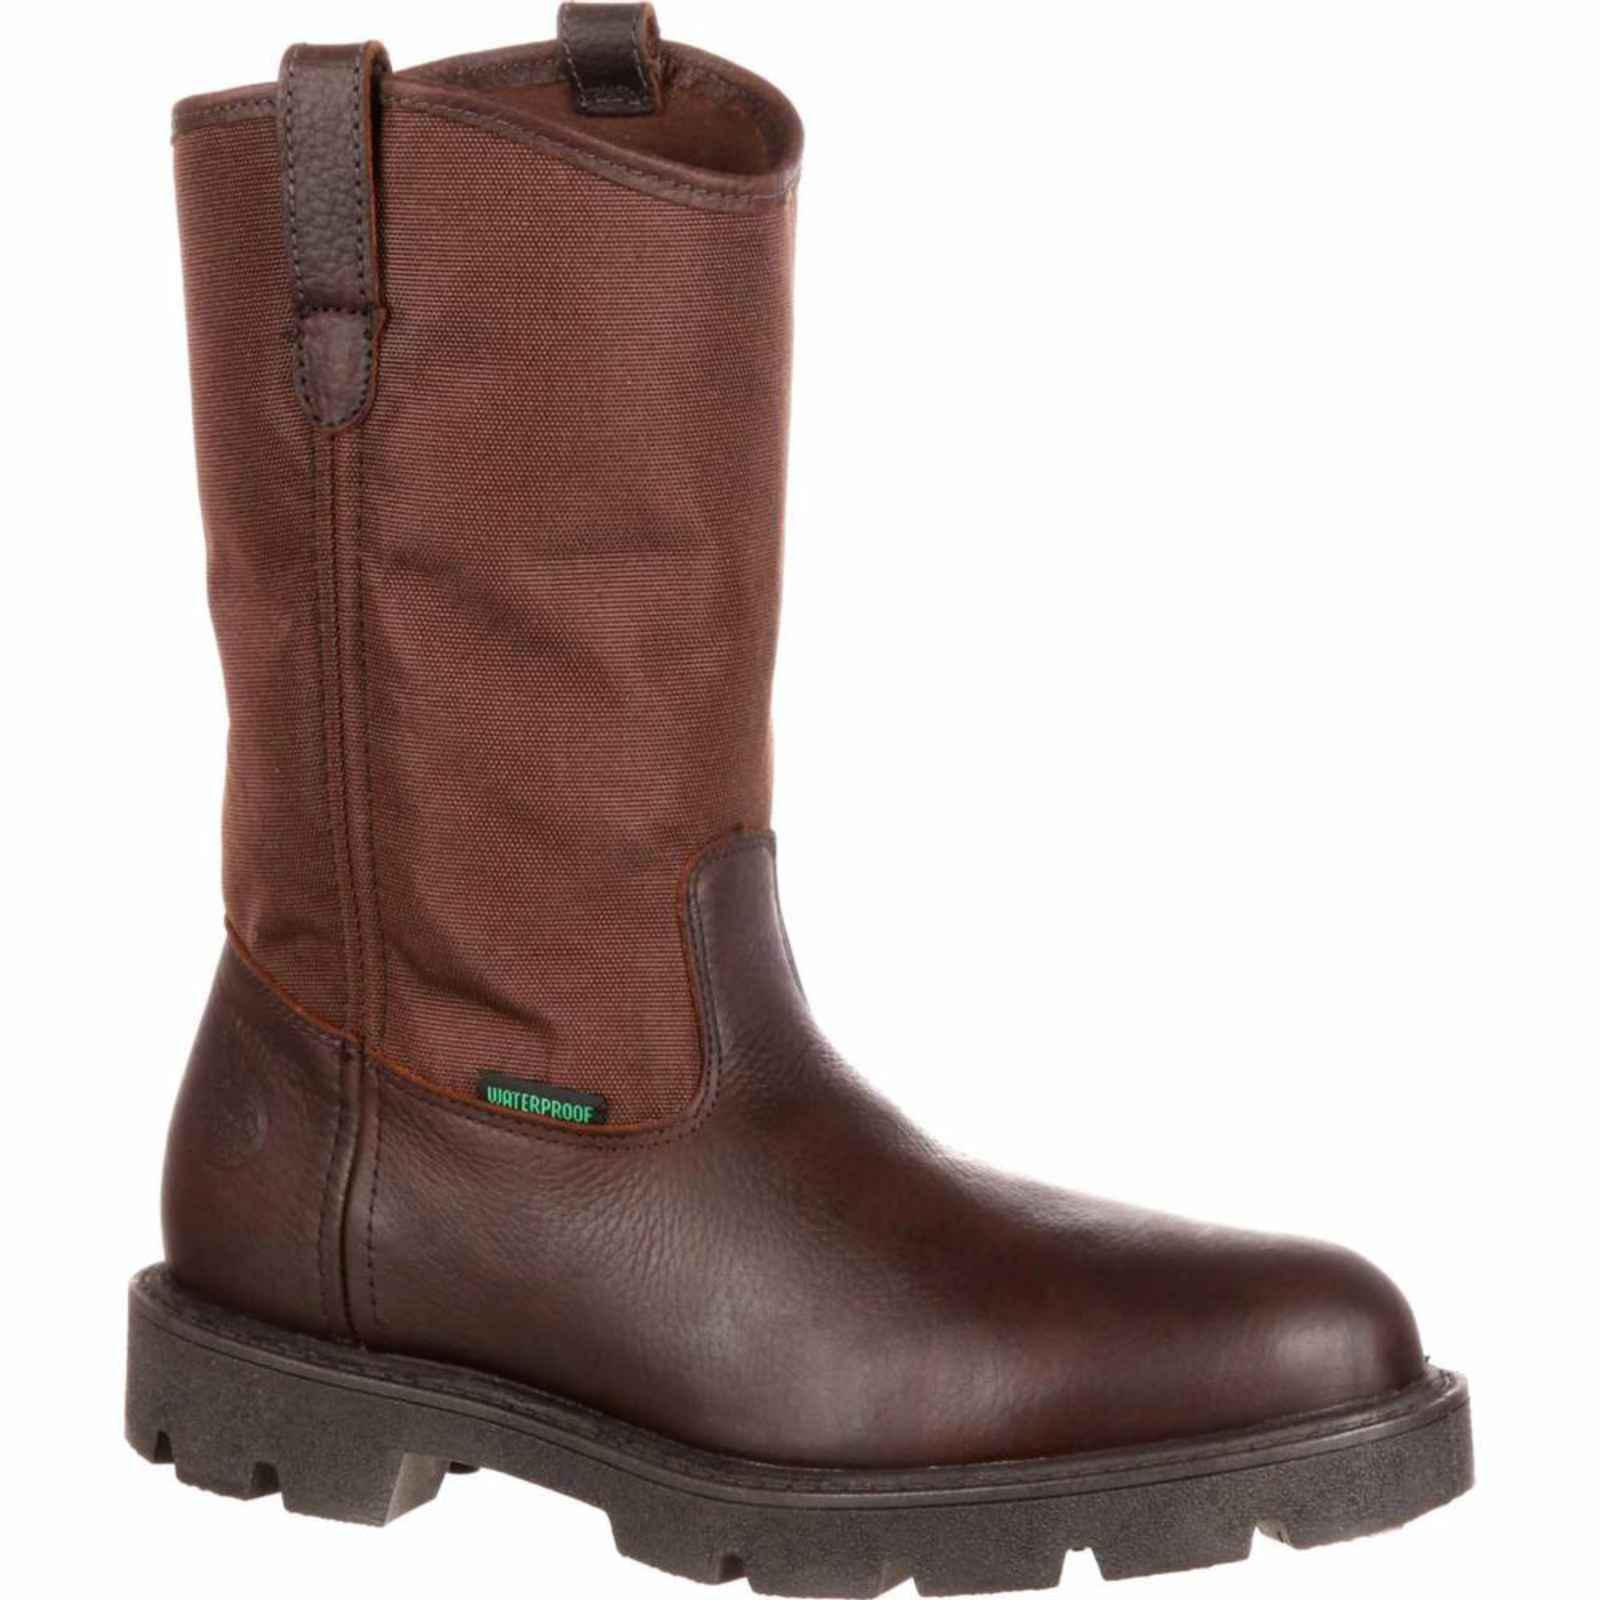 Georgia Homeland Waterproof Wellington Work Boot G113